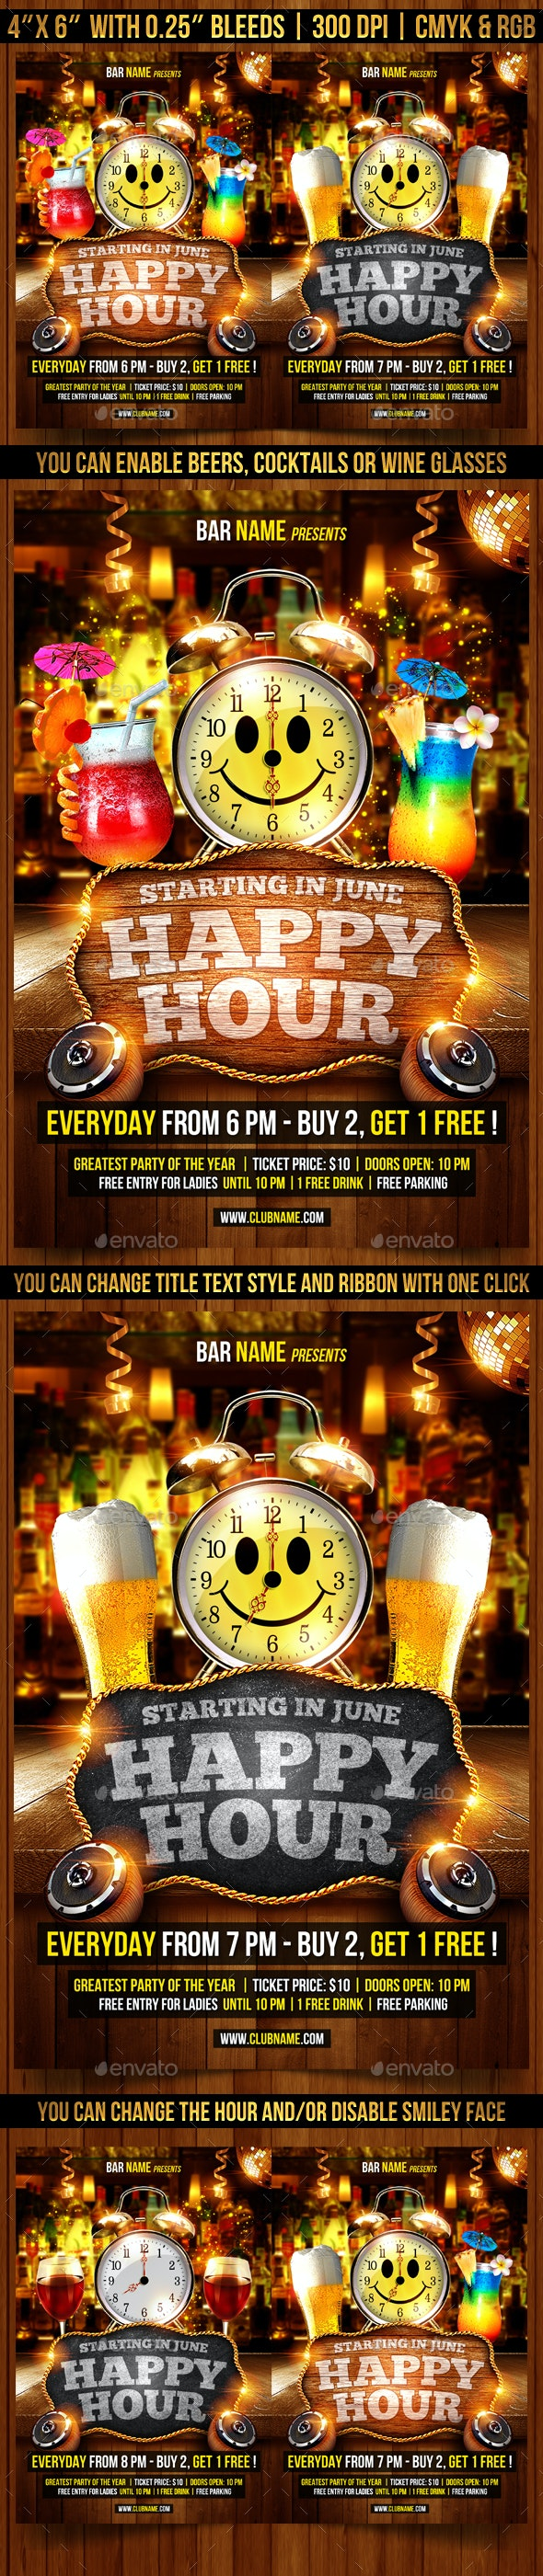 Happy Hour Flyer Template - Clubs & Parties Events